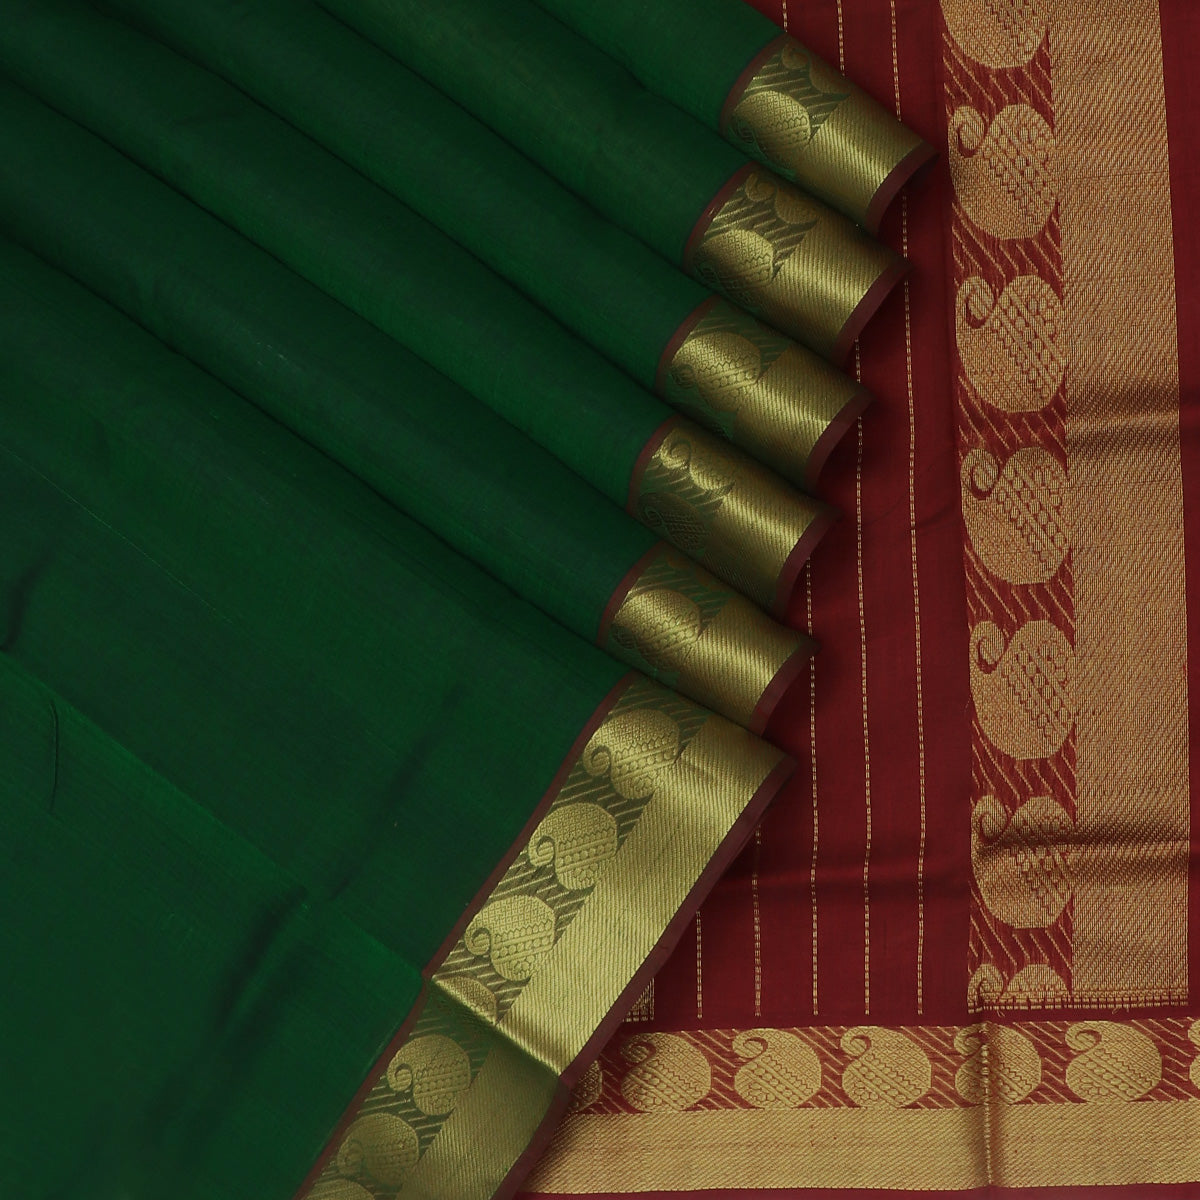 Silk Cotton Seree Dark Green and Maroon with Mango Zari border for Rs.Rs. 3240.00 | Silk Cotton Sarees by Prashanti Sarees